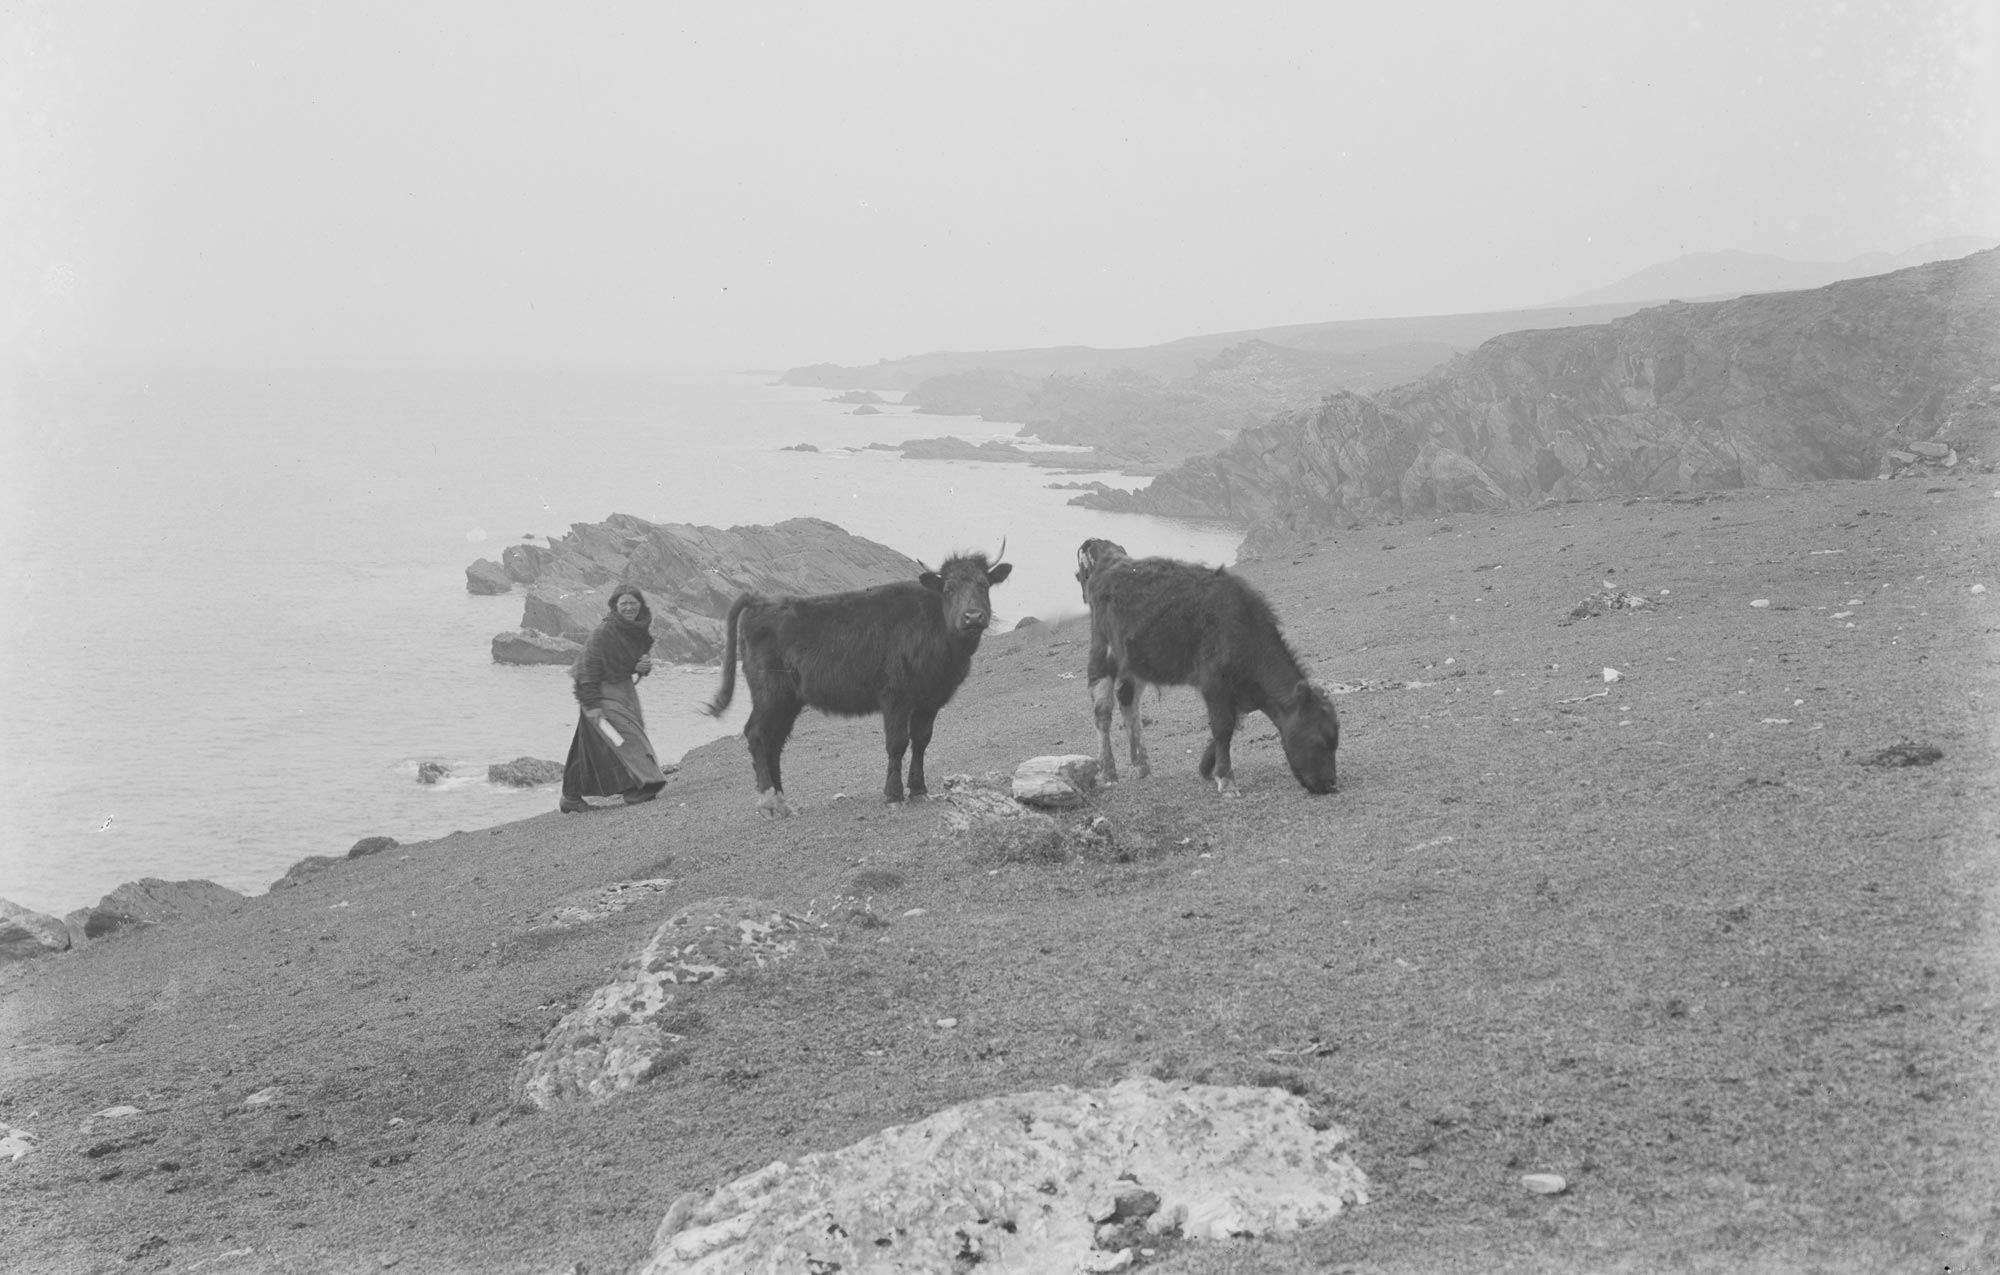 Starvation fears on Achill Island